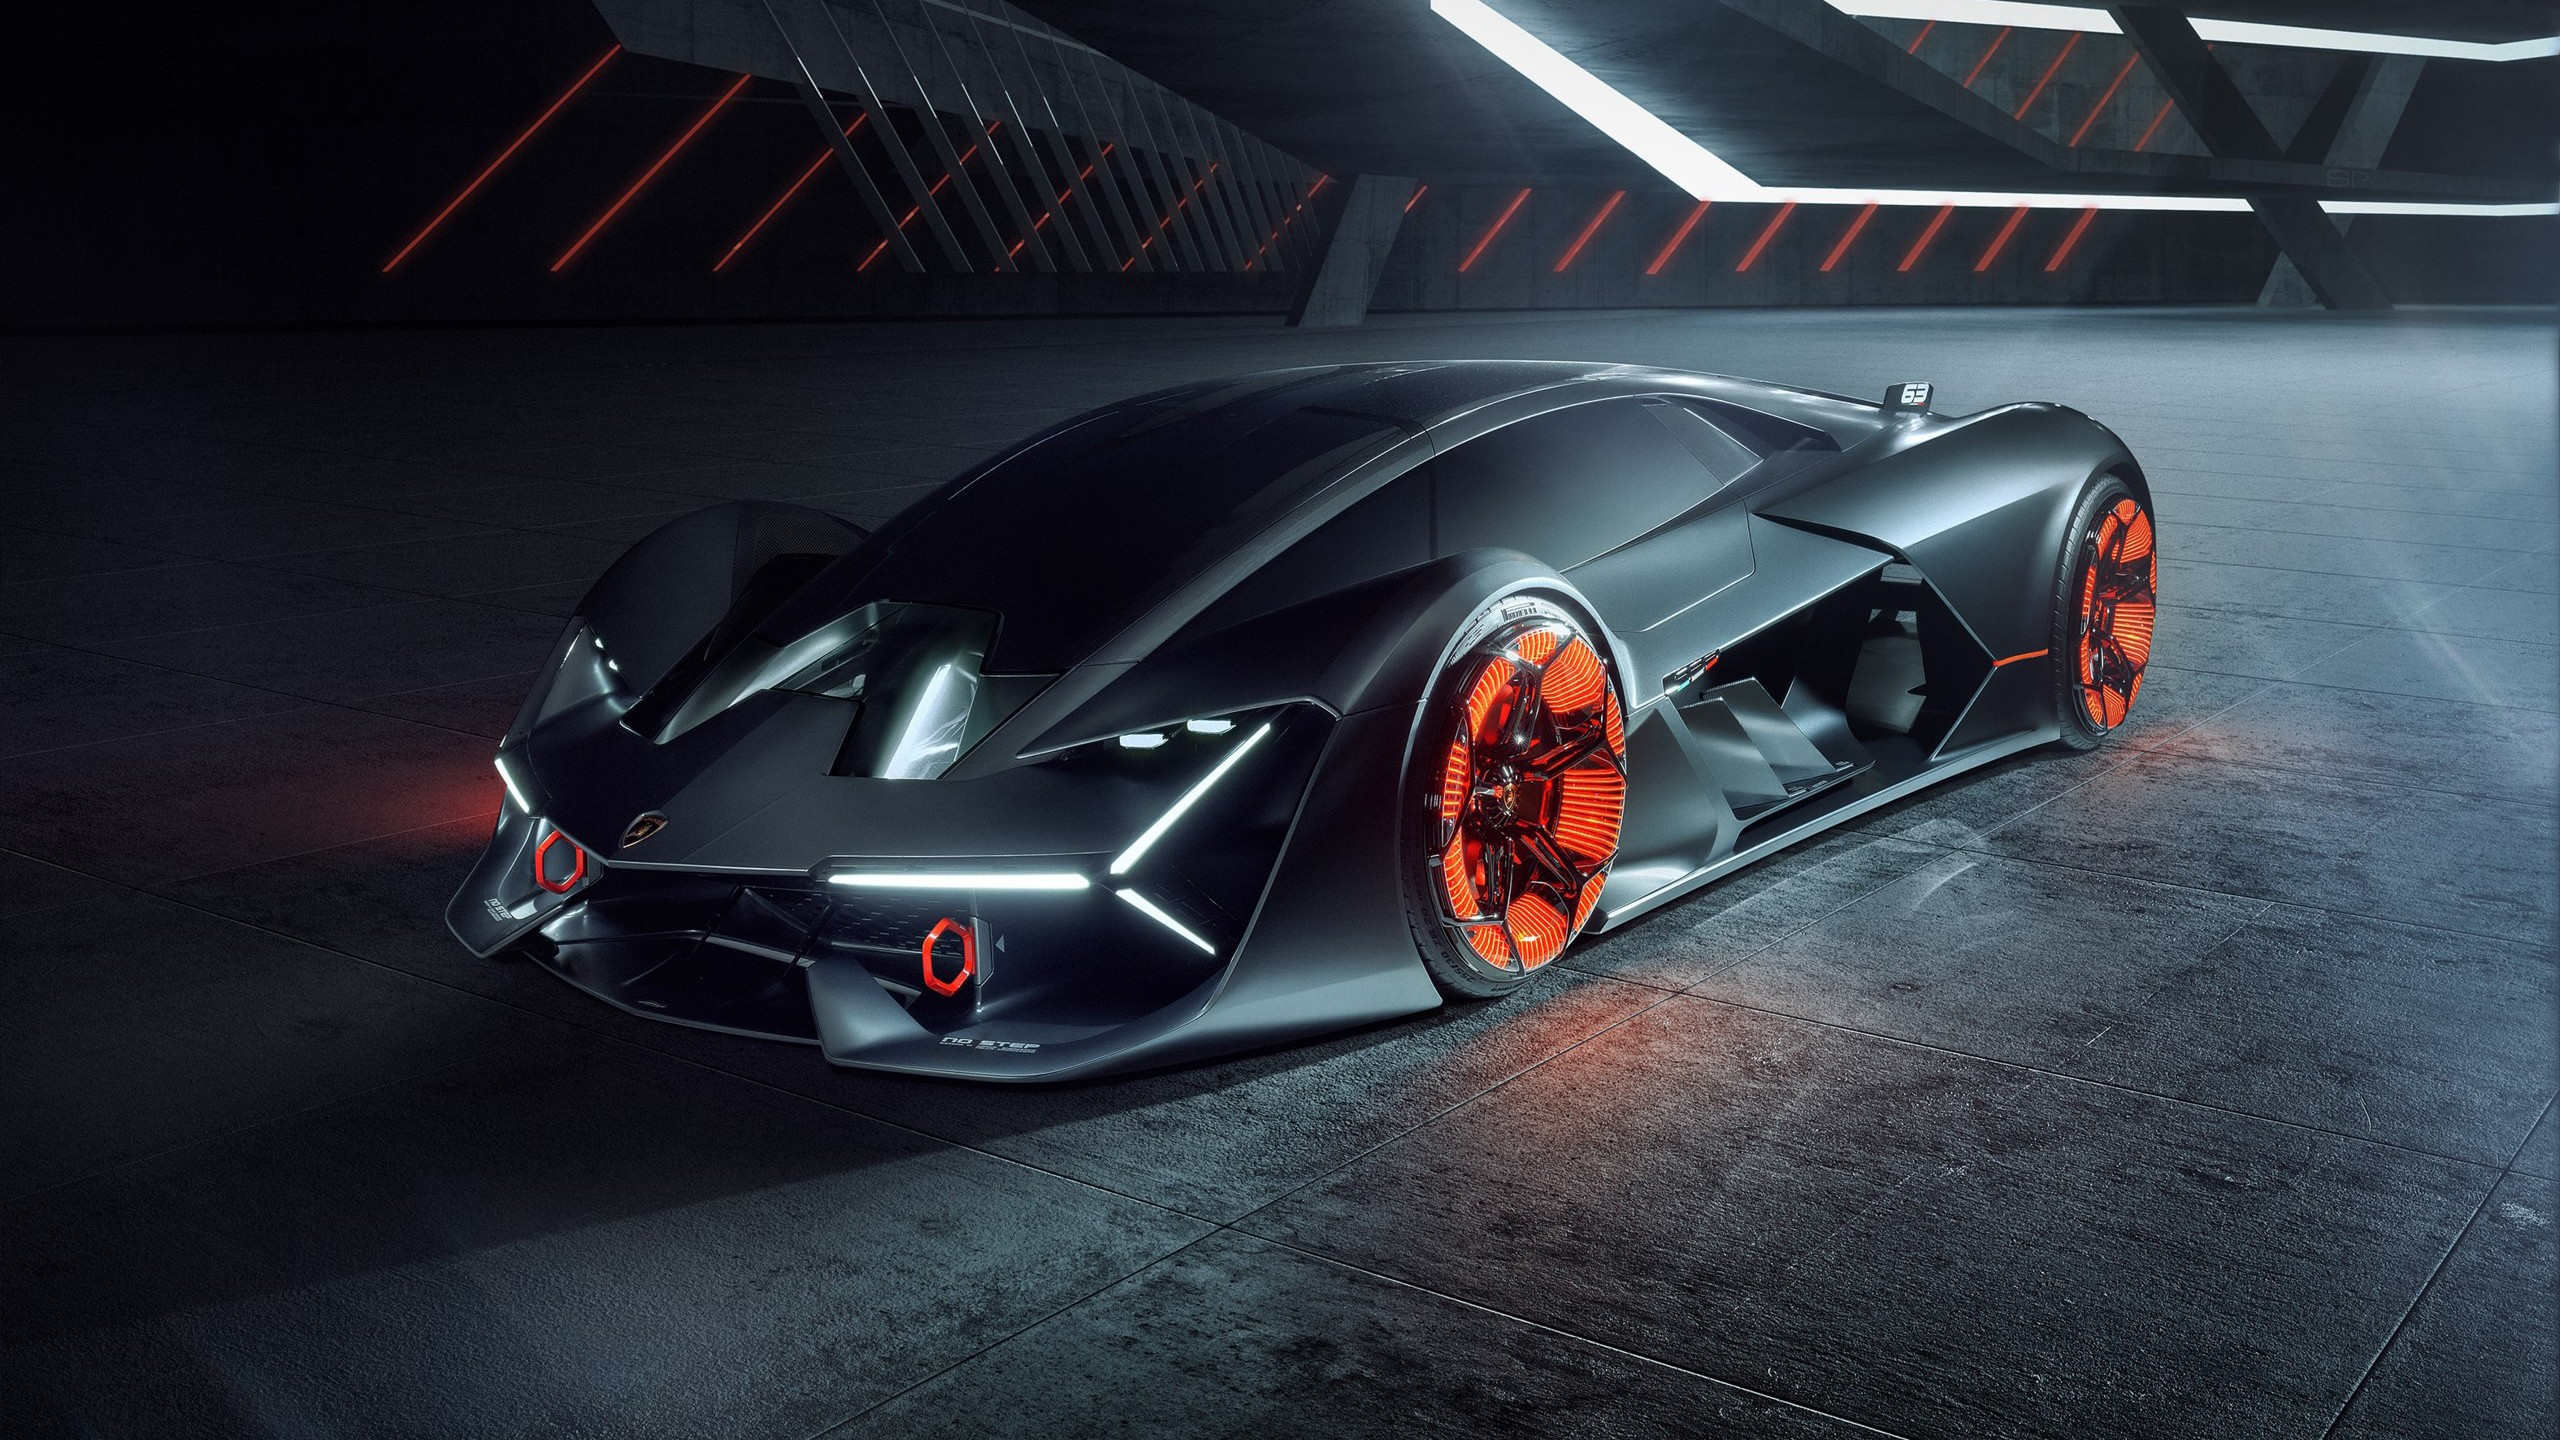 Hd Car Wallpapers For Mobile 28 Wallpapers: Lamborghini Terzo Millennio 2019 4 Wallpaper